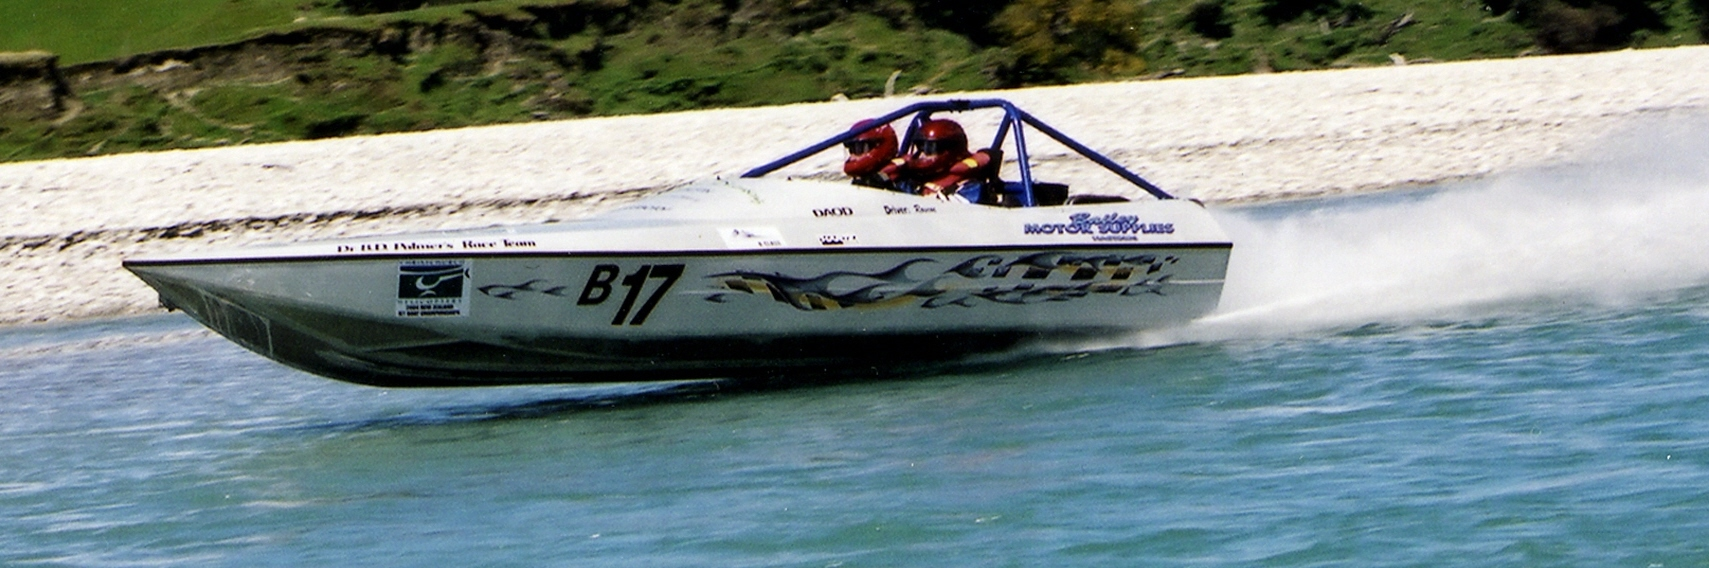 RACE BOAT CROPPED